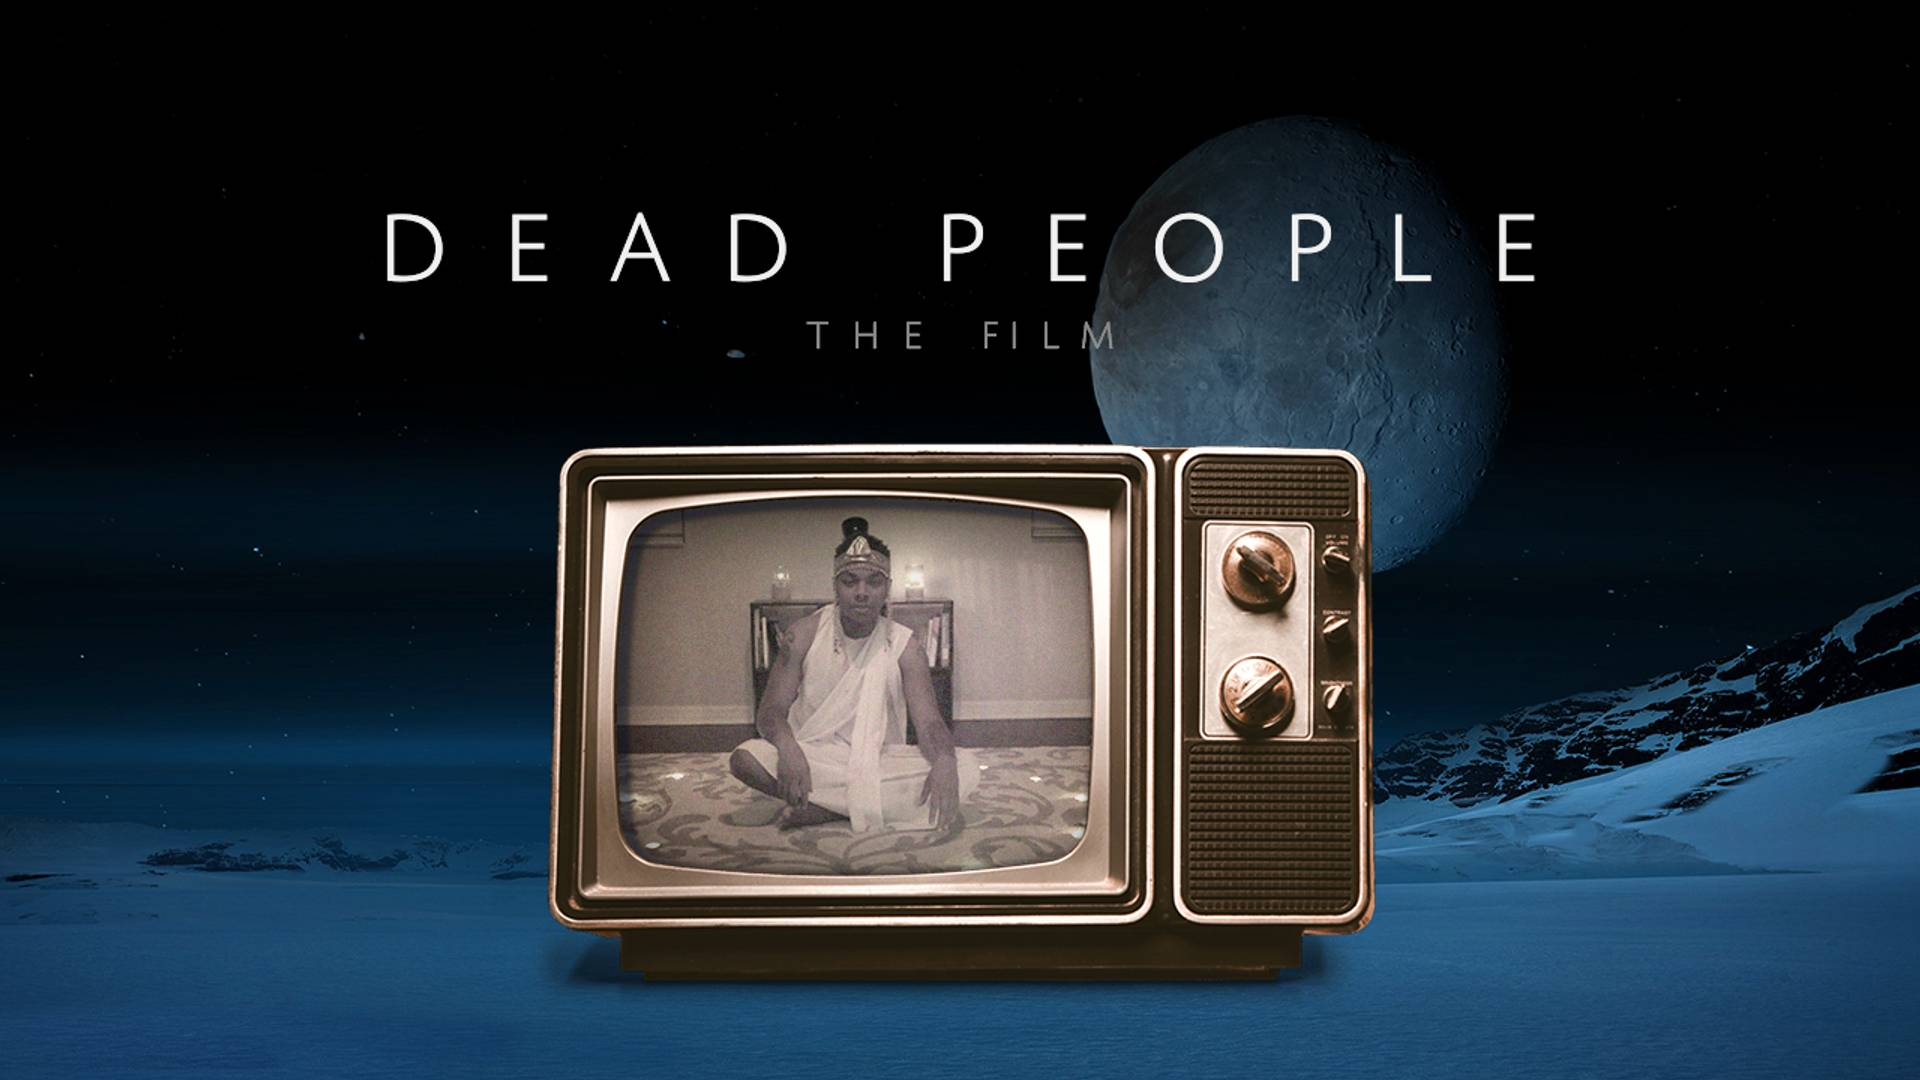 dead people - the film